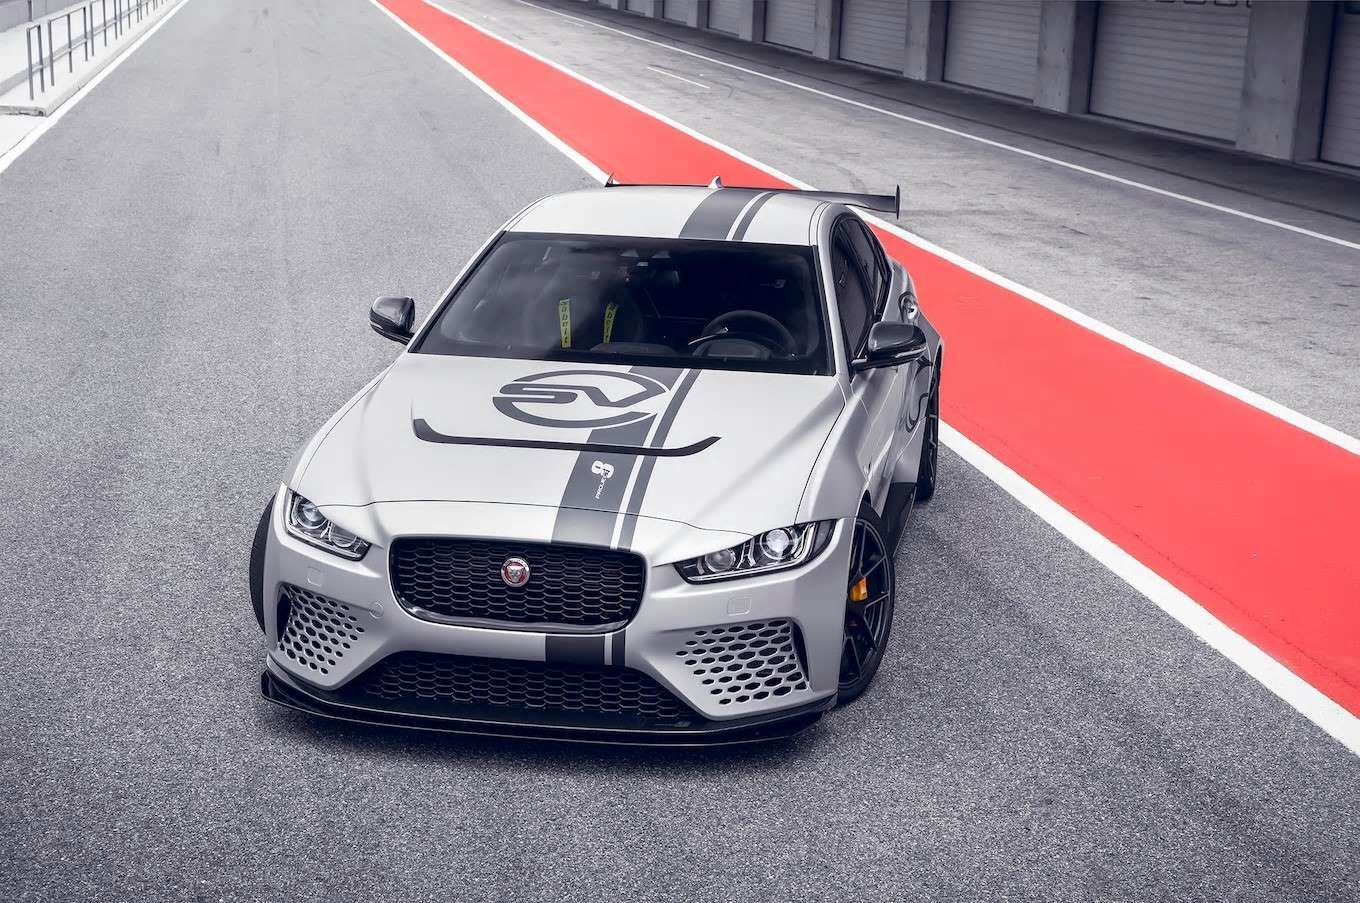 Base Price 37 000 56 000 Body Type Sedanunchanged The 592 Hp Xe Sv Project 8 Is The Fastest Pro Motor Trend Staff New Cars New Jaguar Jaguar Xe